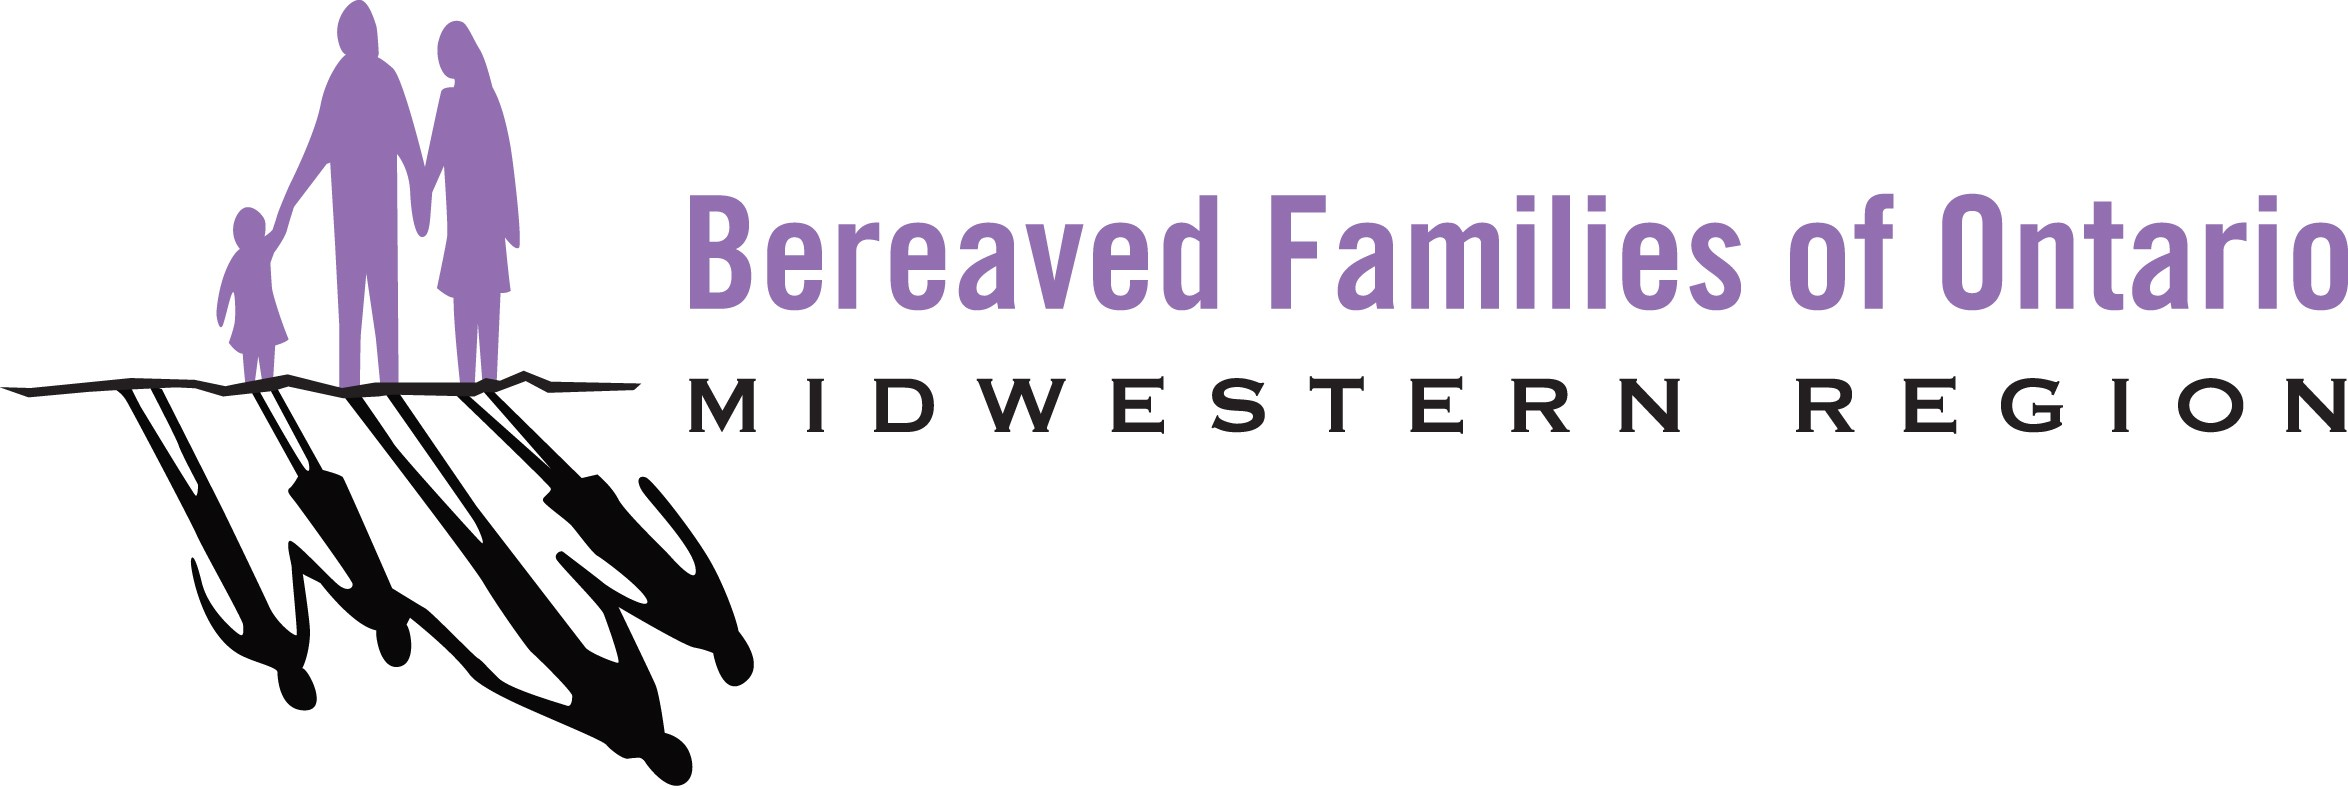 Bereaved Families of Ontario Midwestern Region